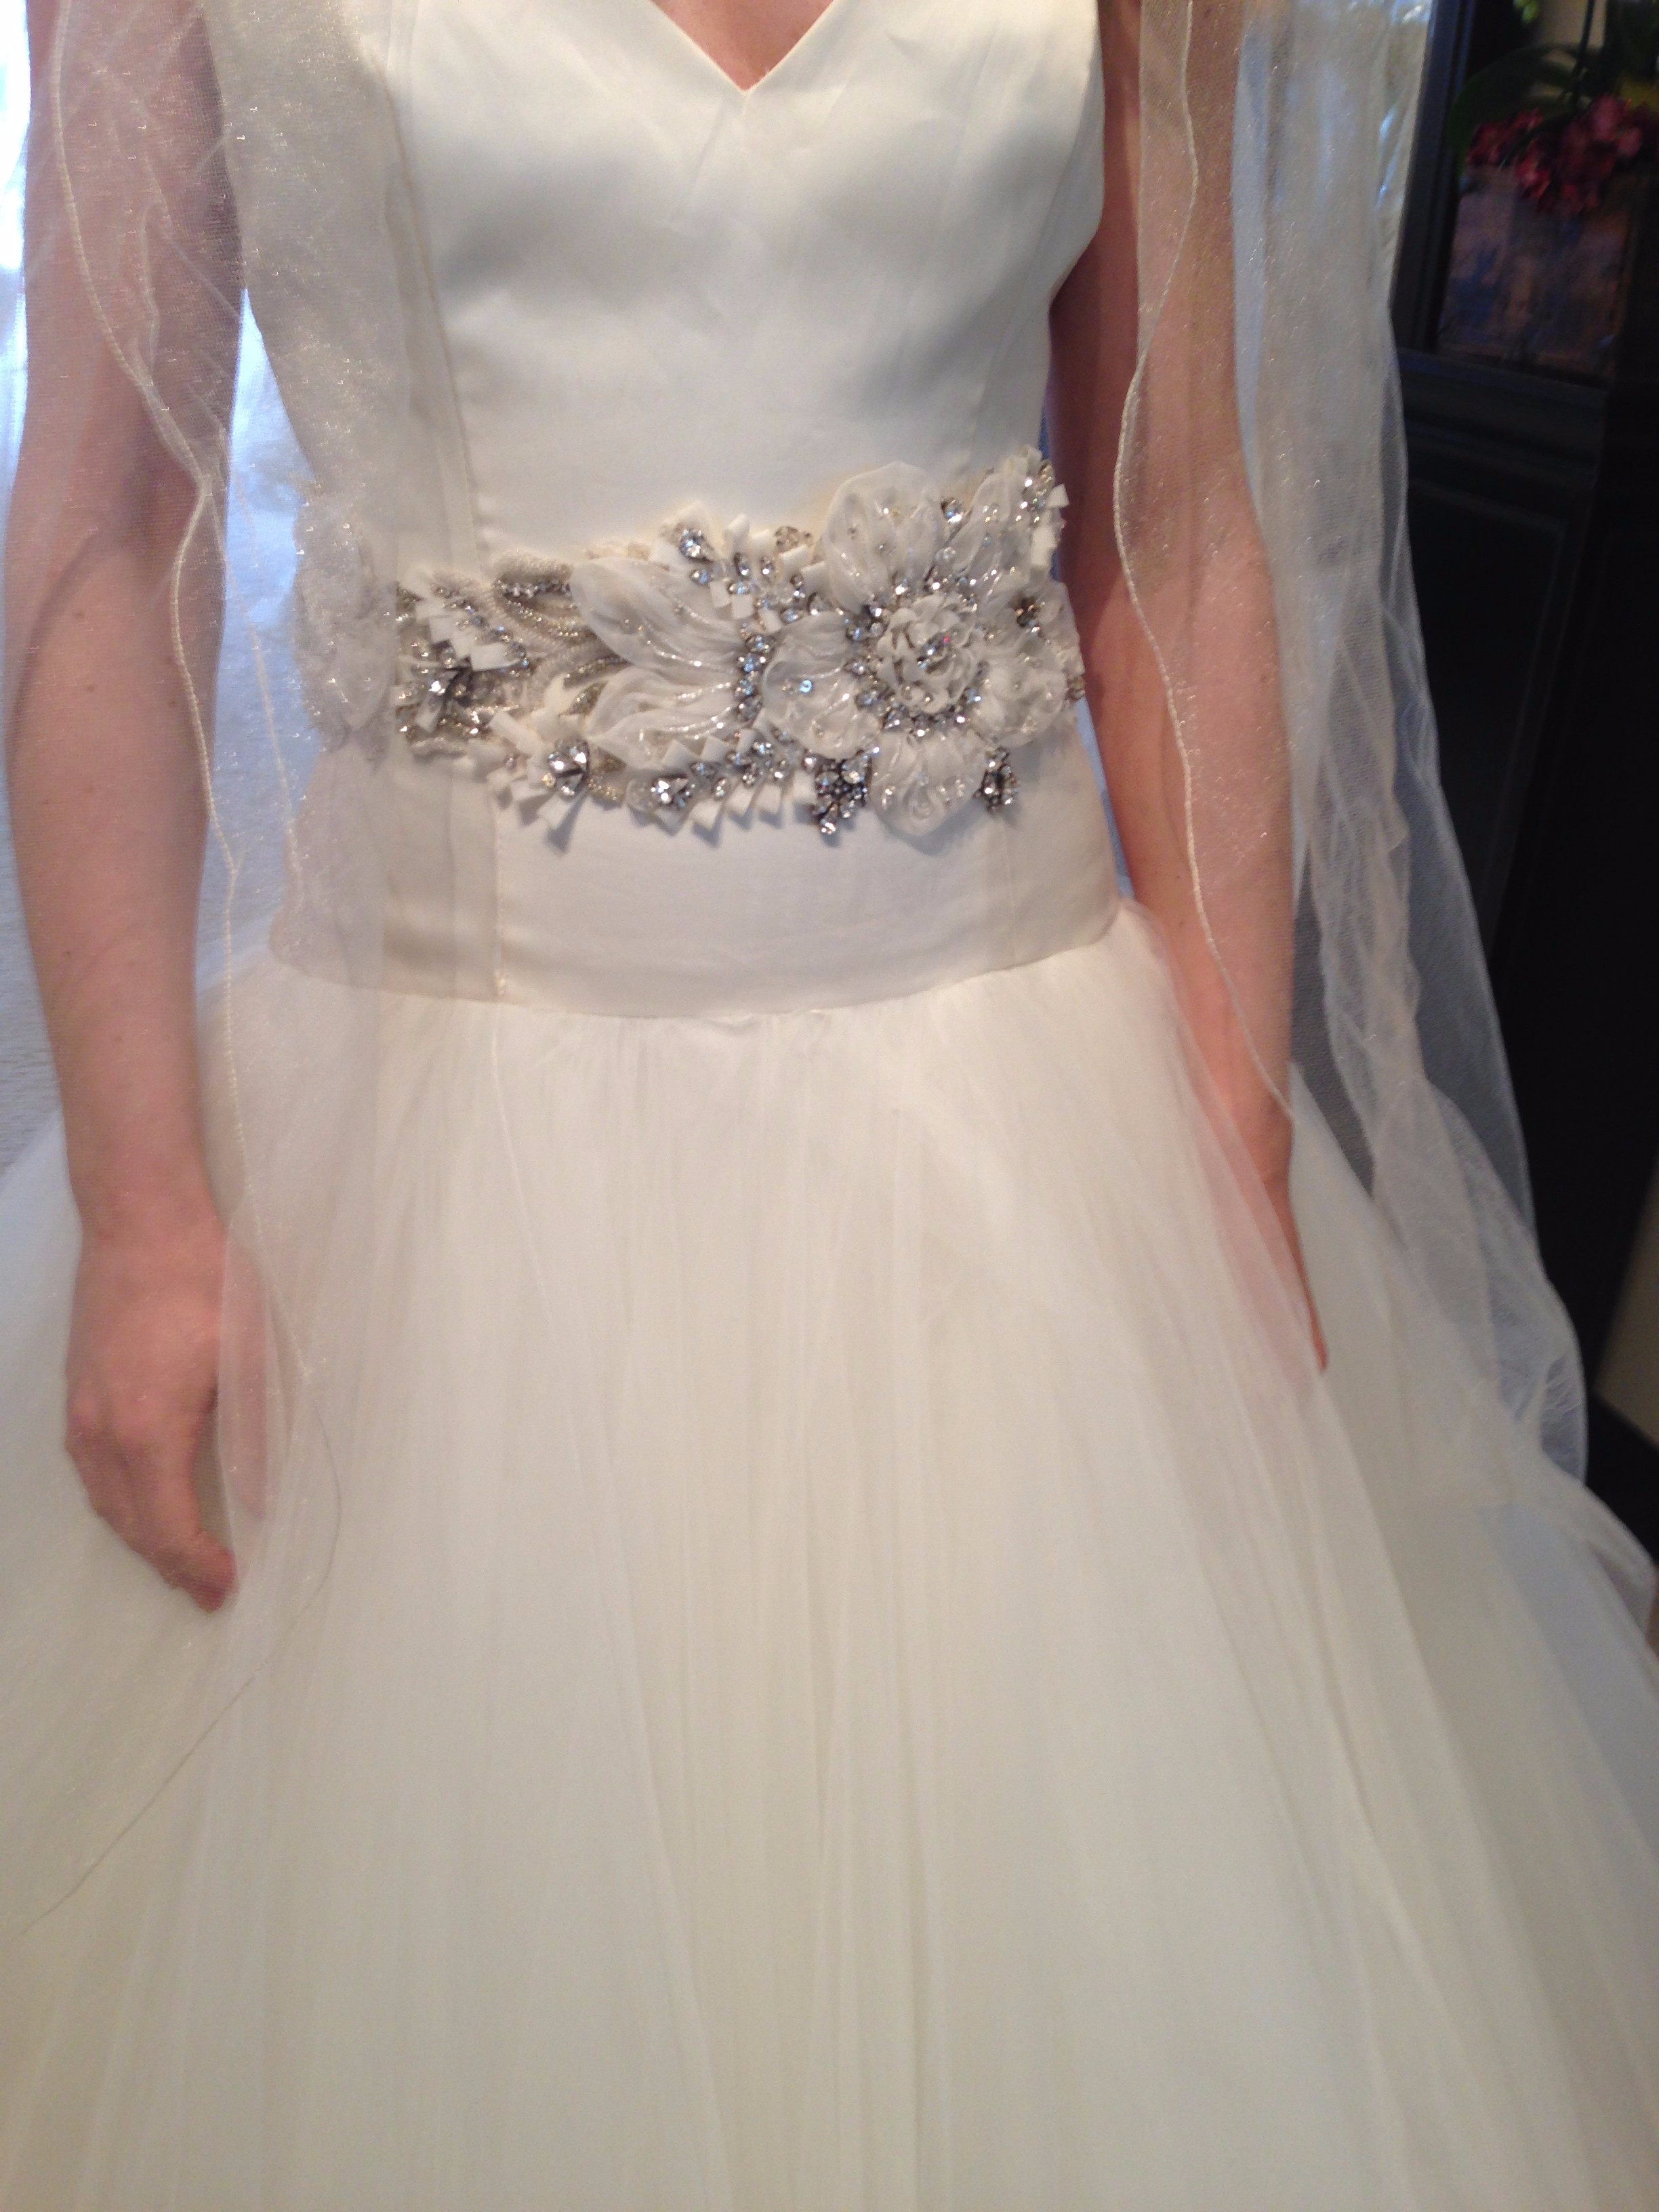 lazaro wedding dress with sweetheart neckline, ballgown dress with beaded belt http://itgirlweddings.com/amazing-moments-that-make-us-sweat/